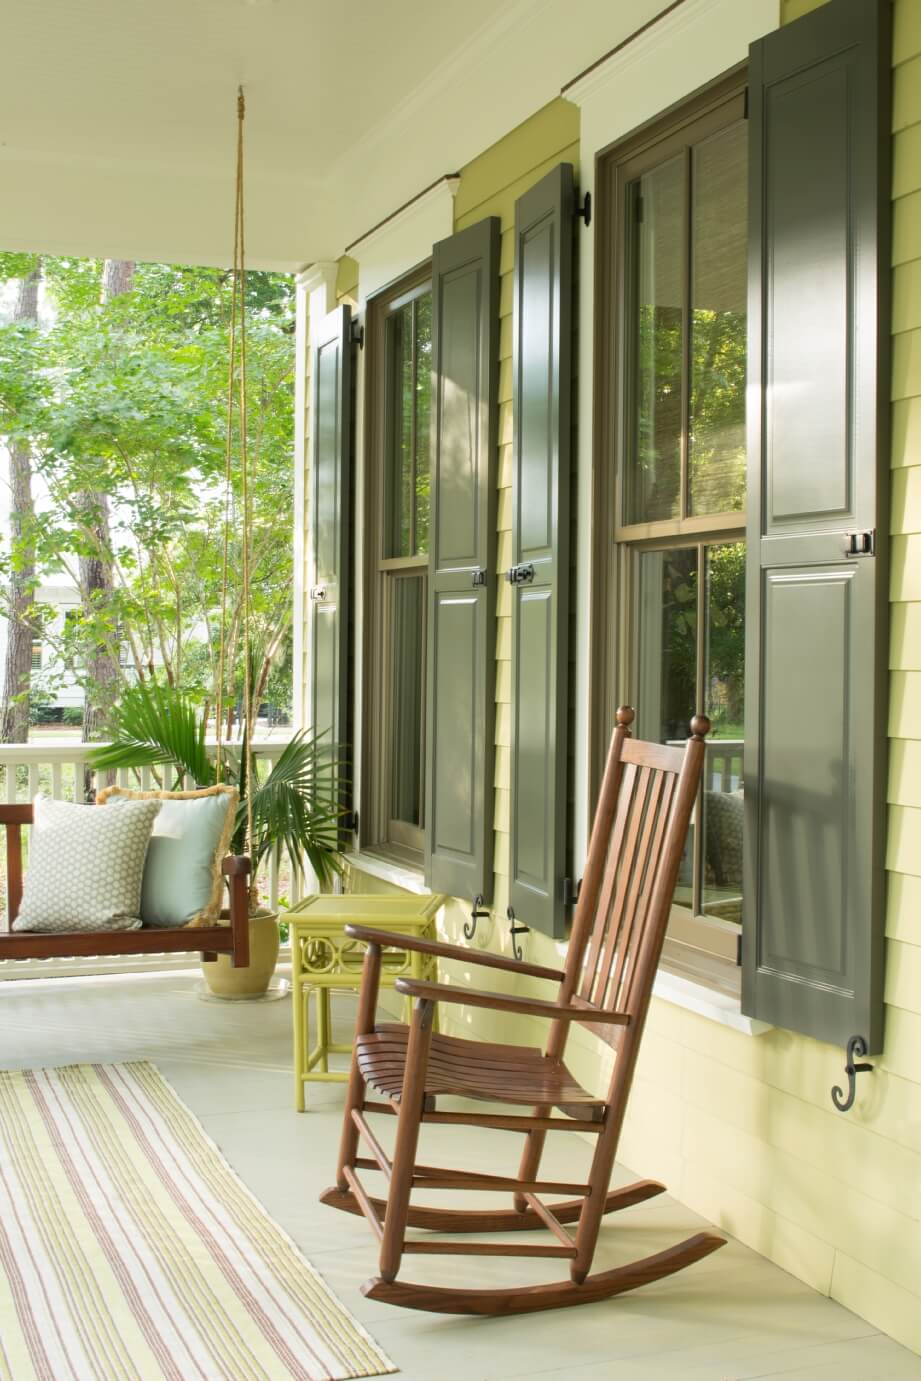 Greenporchdetail With Darkgreenshutters And Rocker